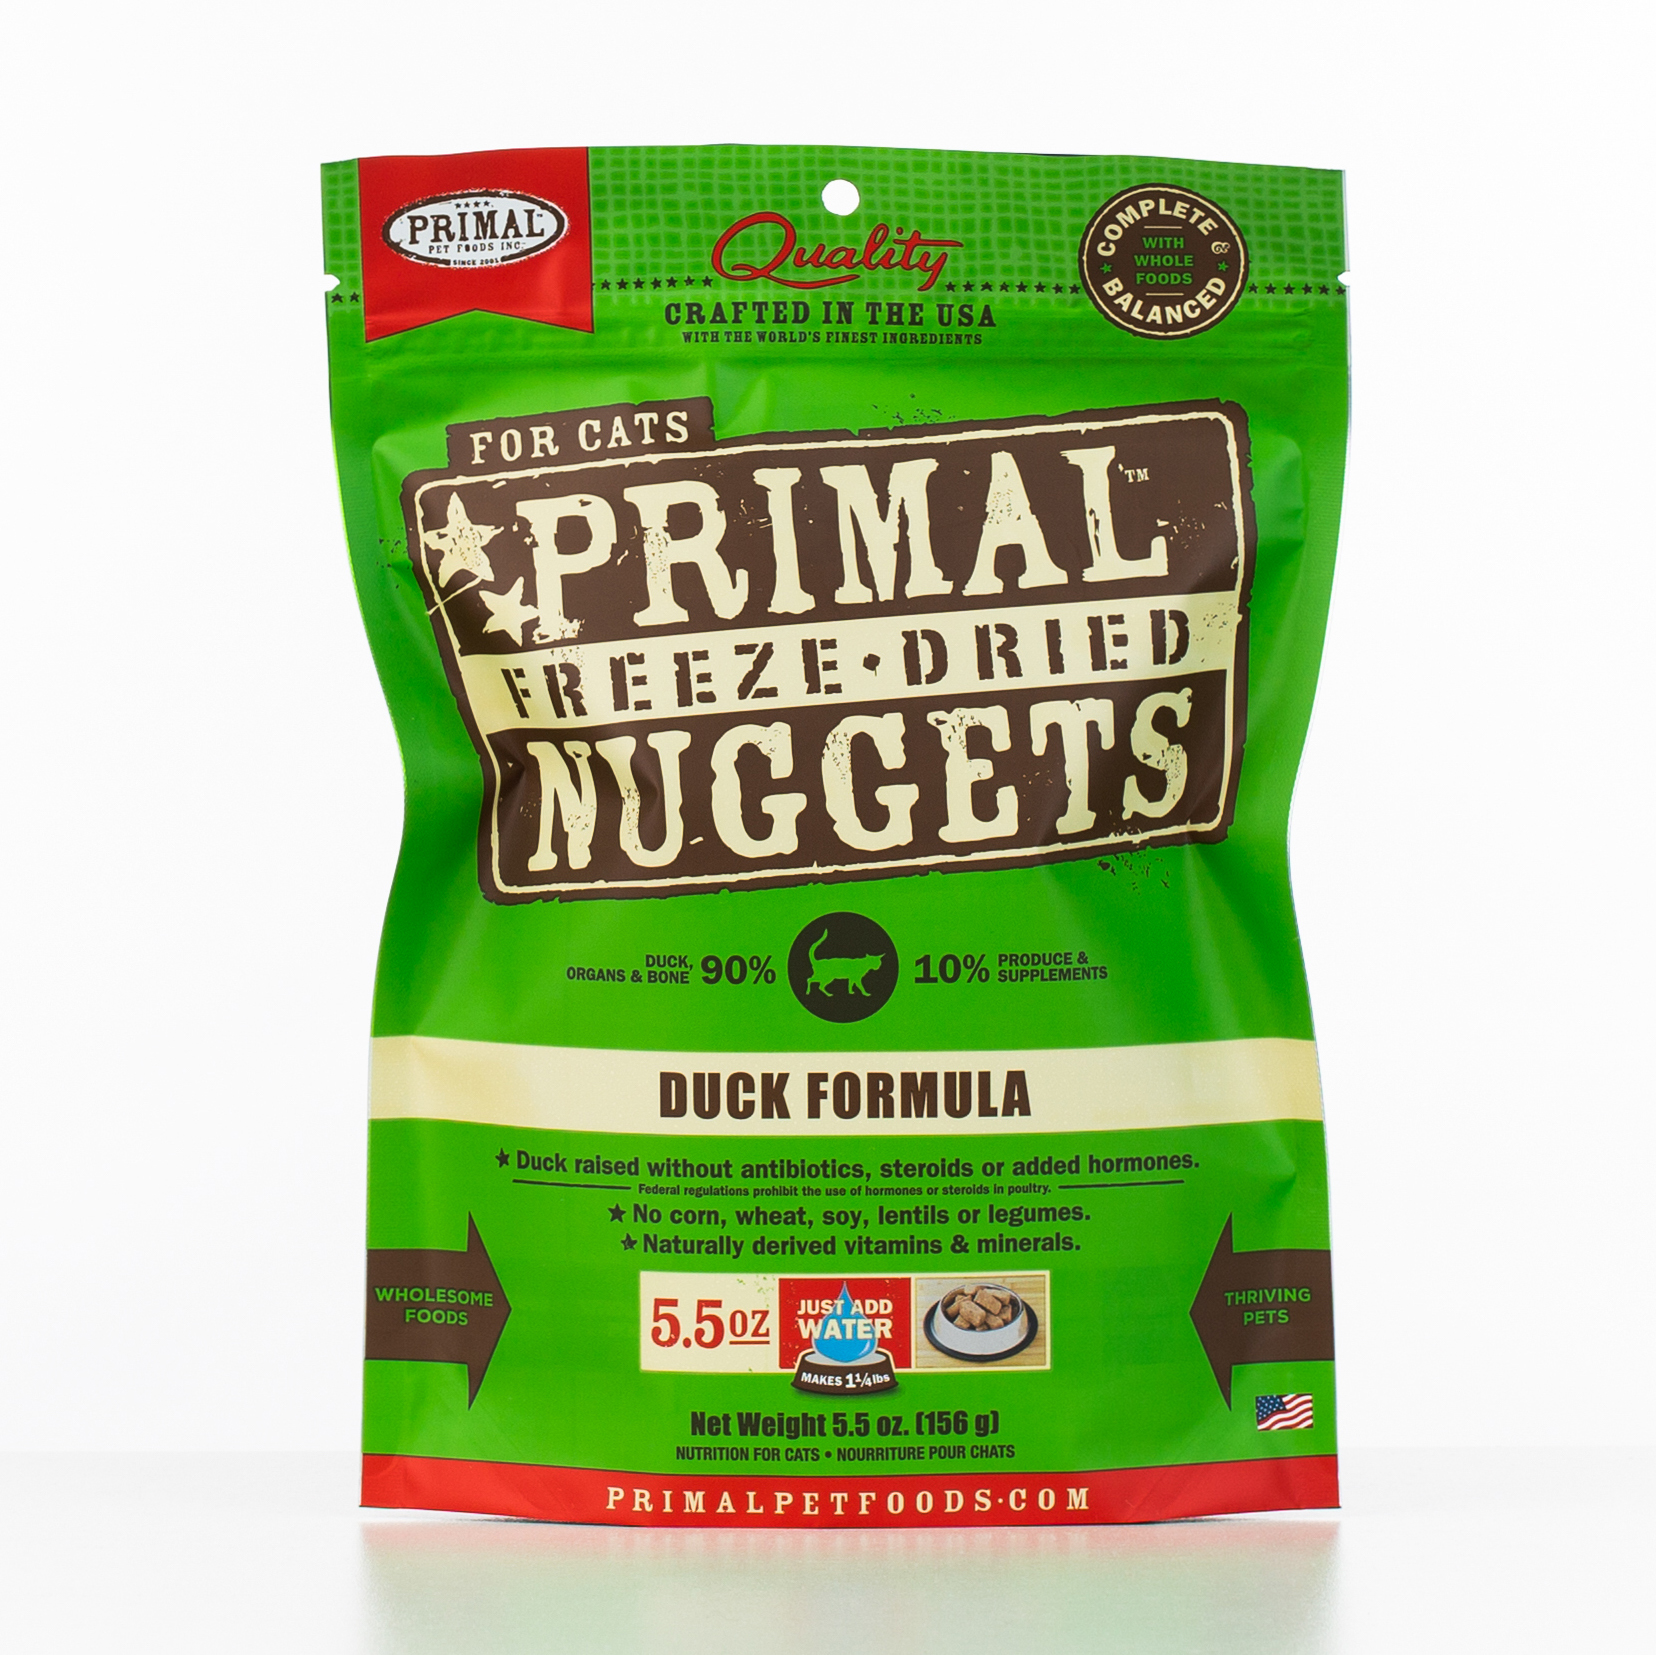 Primal Raw Freeze-Dried Nuggets Duck Formula Cat Food Image